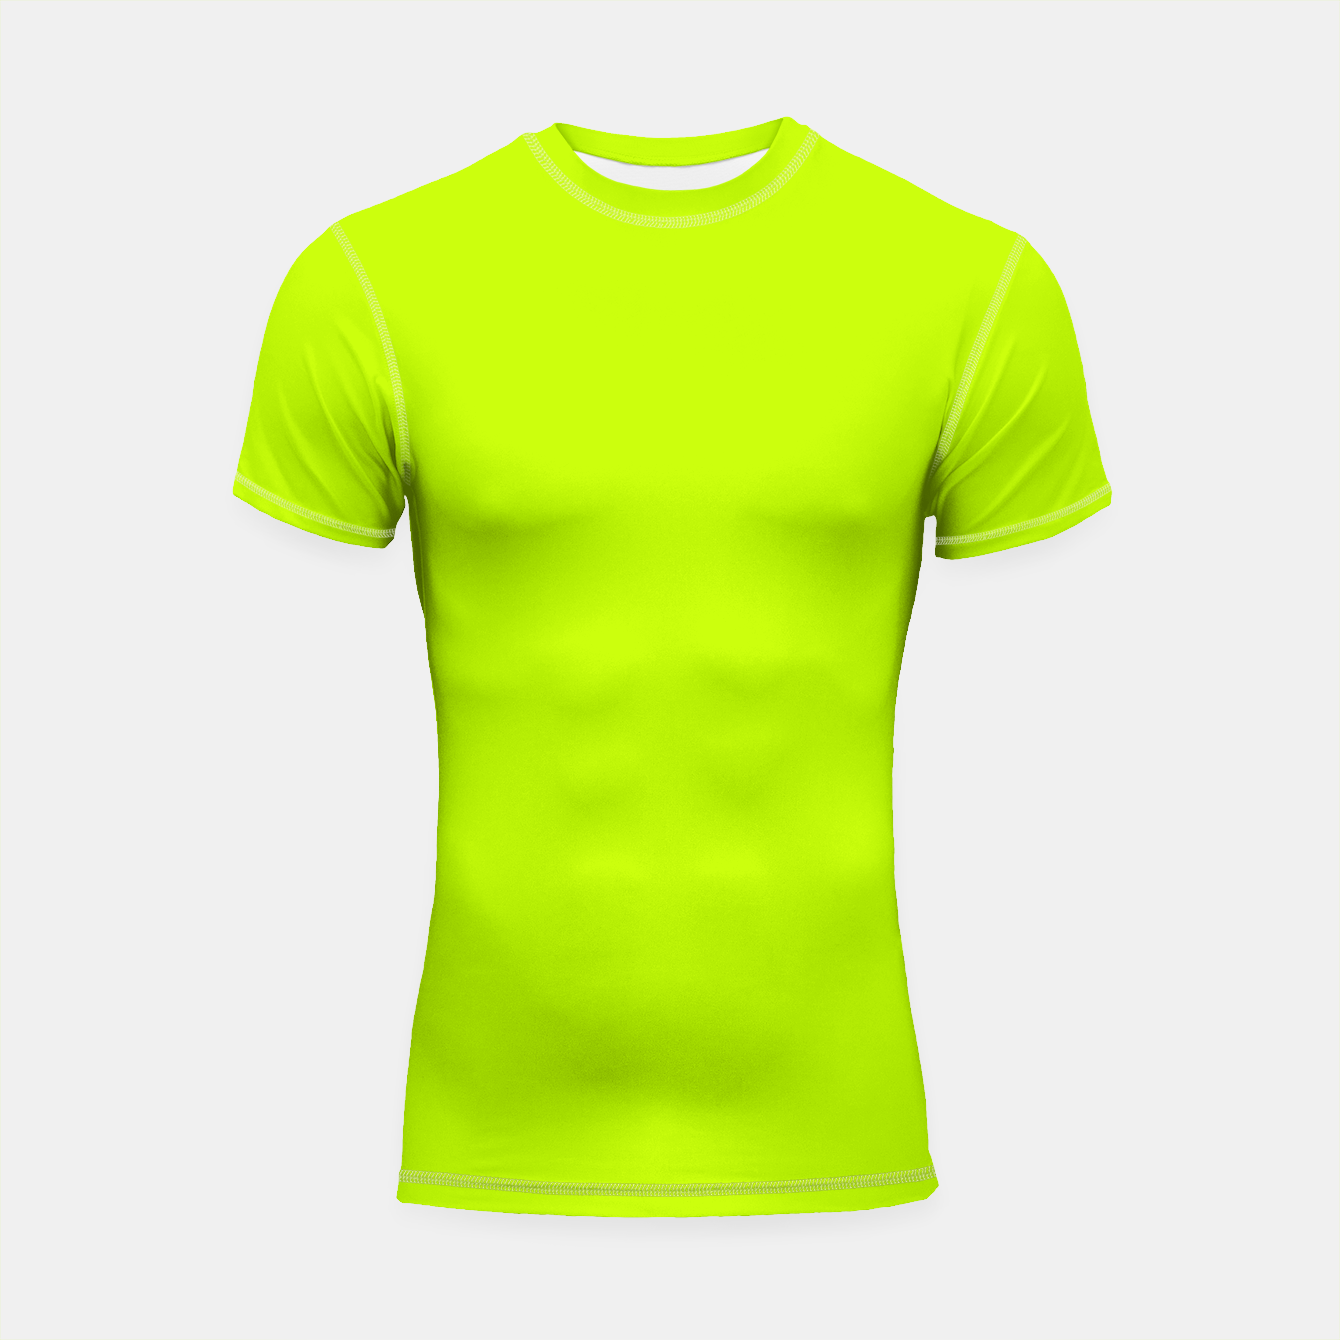 Imagen de Bitter Lime Neon Green Yellow Solid Color Shortsleeve rashguard - Live Heroes